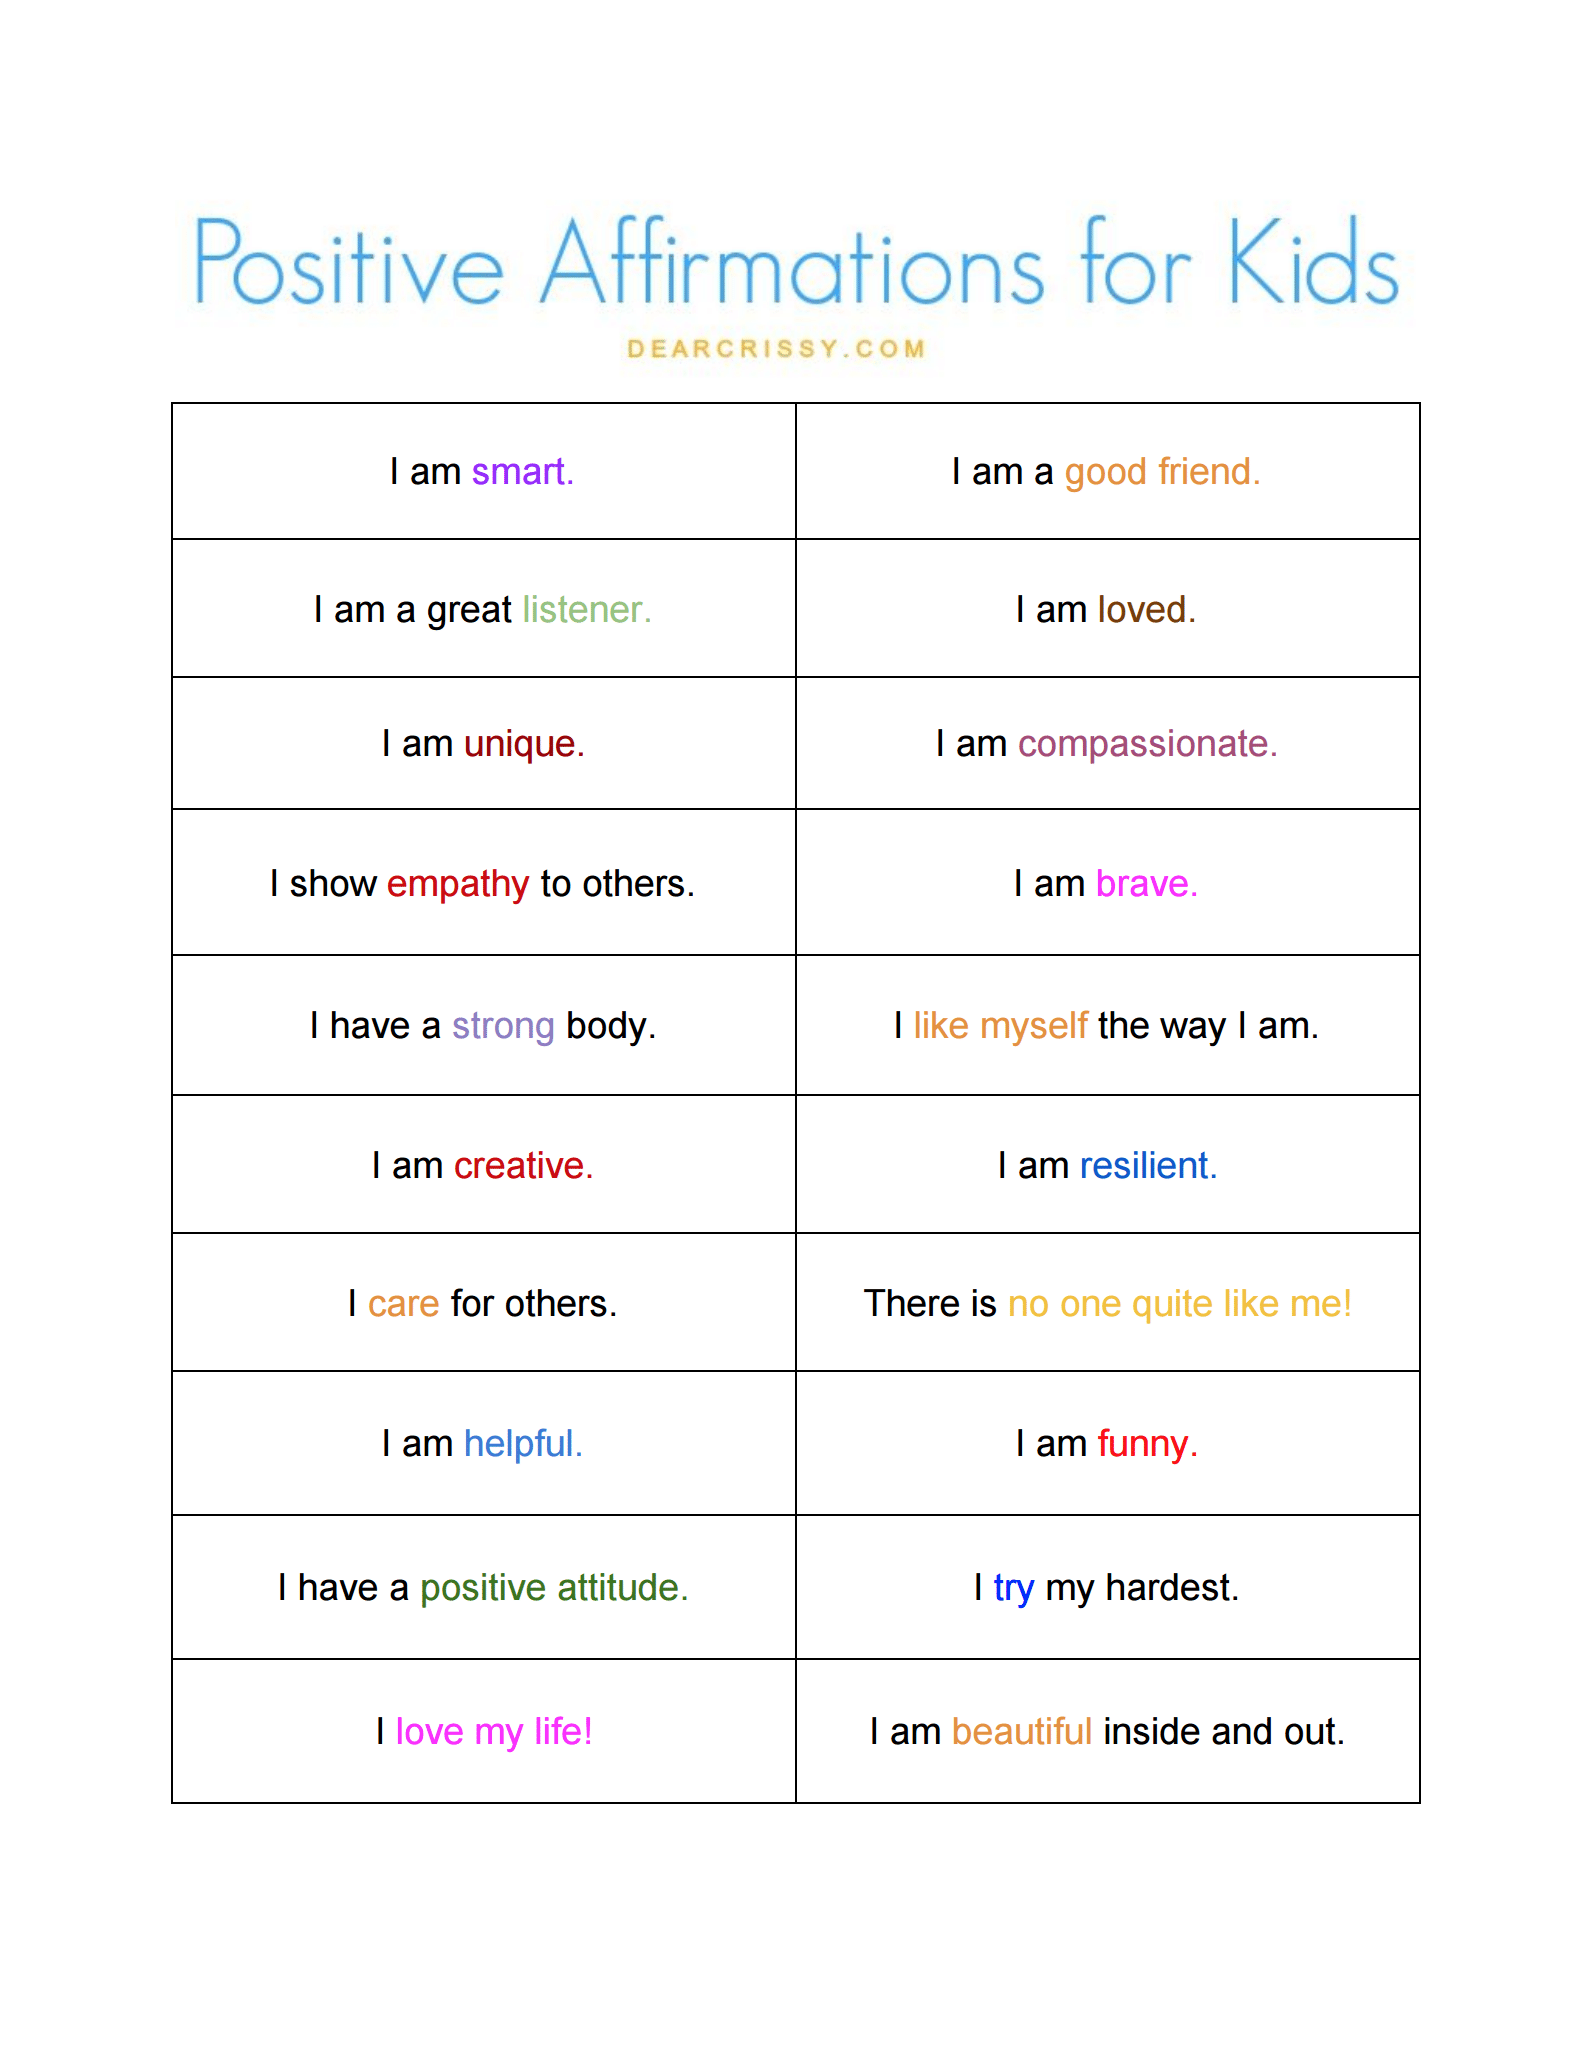 How to Write Affirmations and Create a Powerful List by Using the Right Words